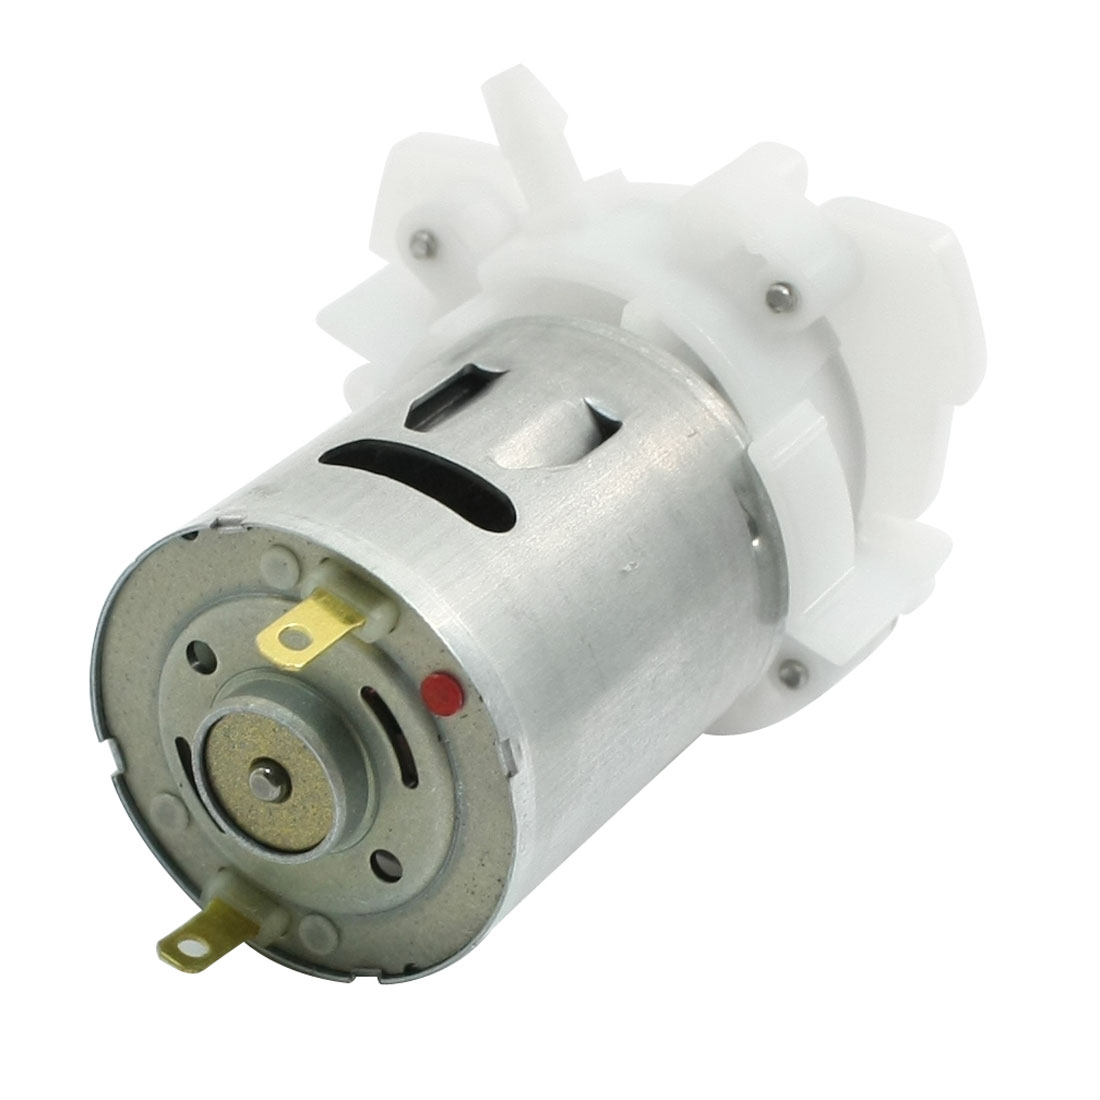 Car-Water-Pump-2-Terminal-Electric-Magnetic-Mini-Motor-6000RPM-DC-12V